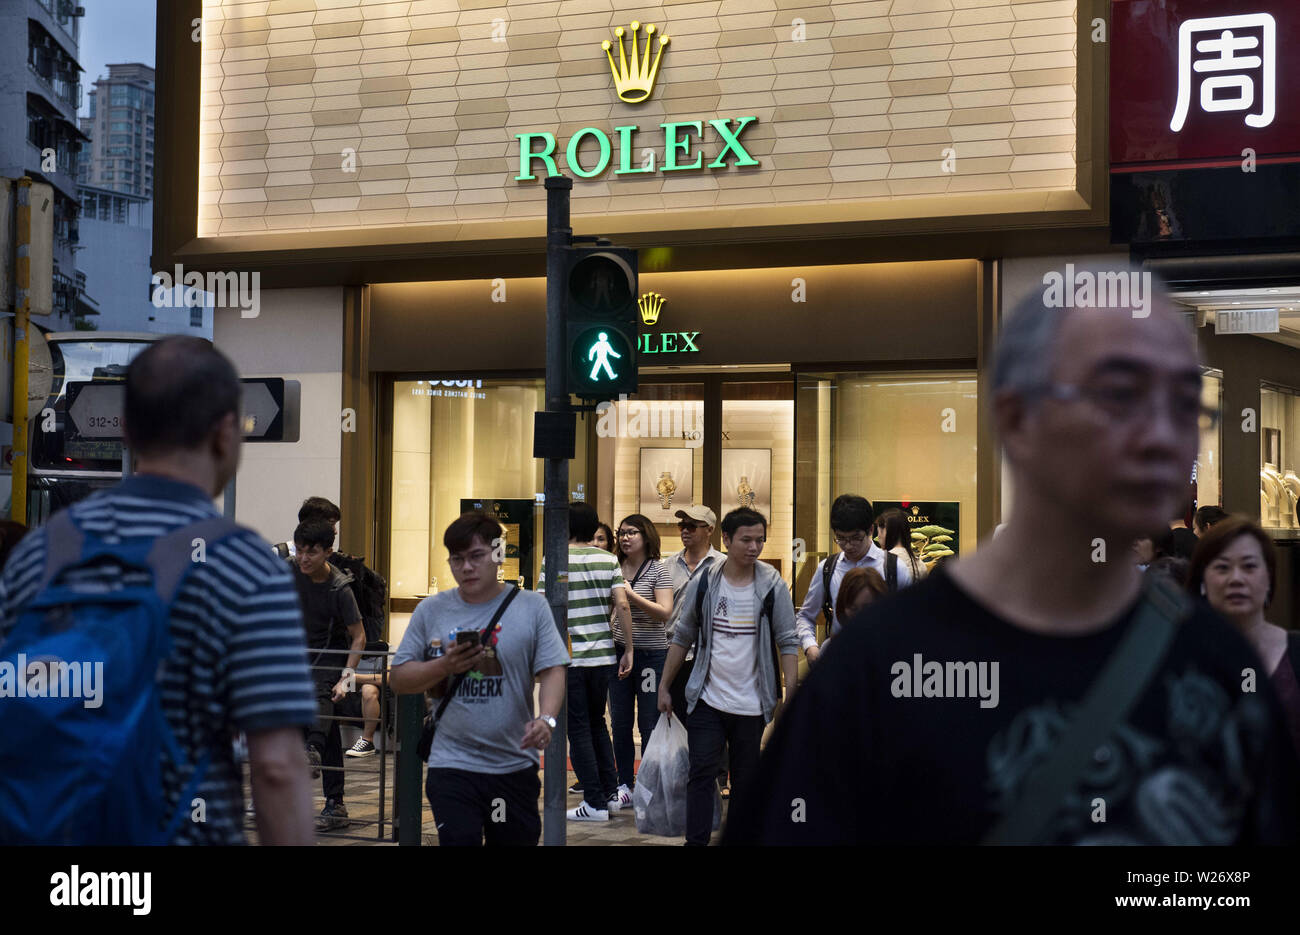 Hong Kong, China. 17th May, 2019. Commuters pass by the Swiss luxury watchmaker Rolex branch in Hong Kong. Credit: Budrul Chukrut/SOPA Images/ZUMA Wire/Alamy Live News - Stock Image